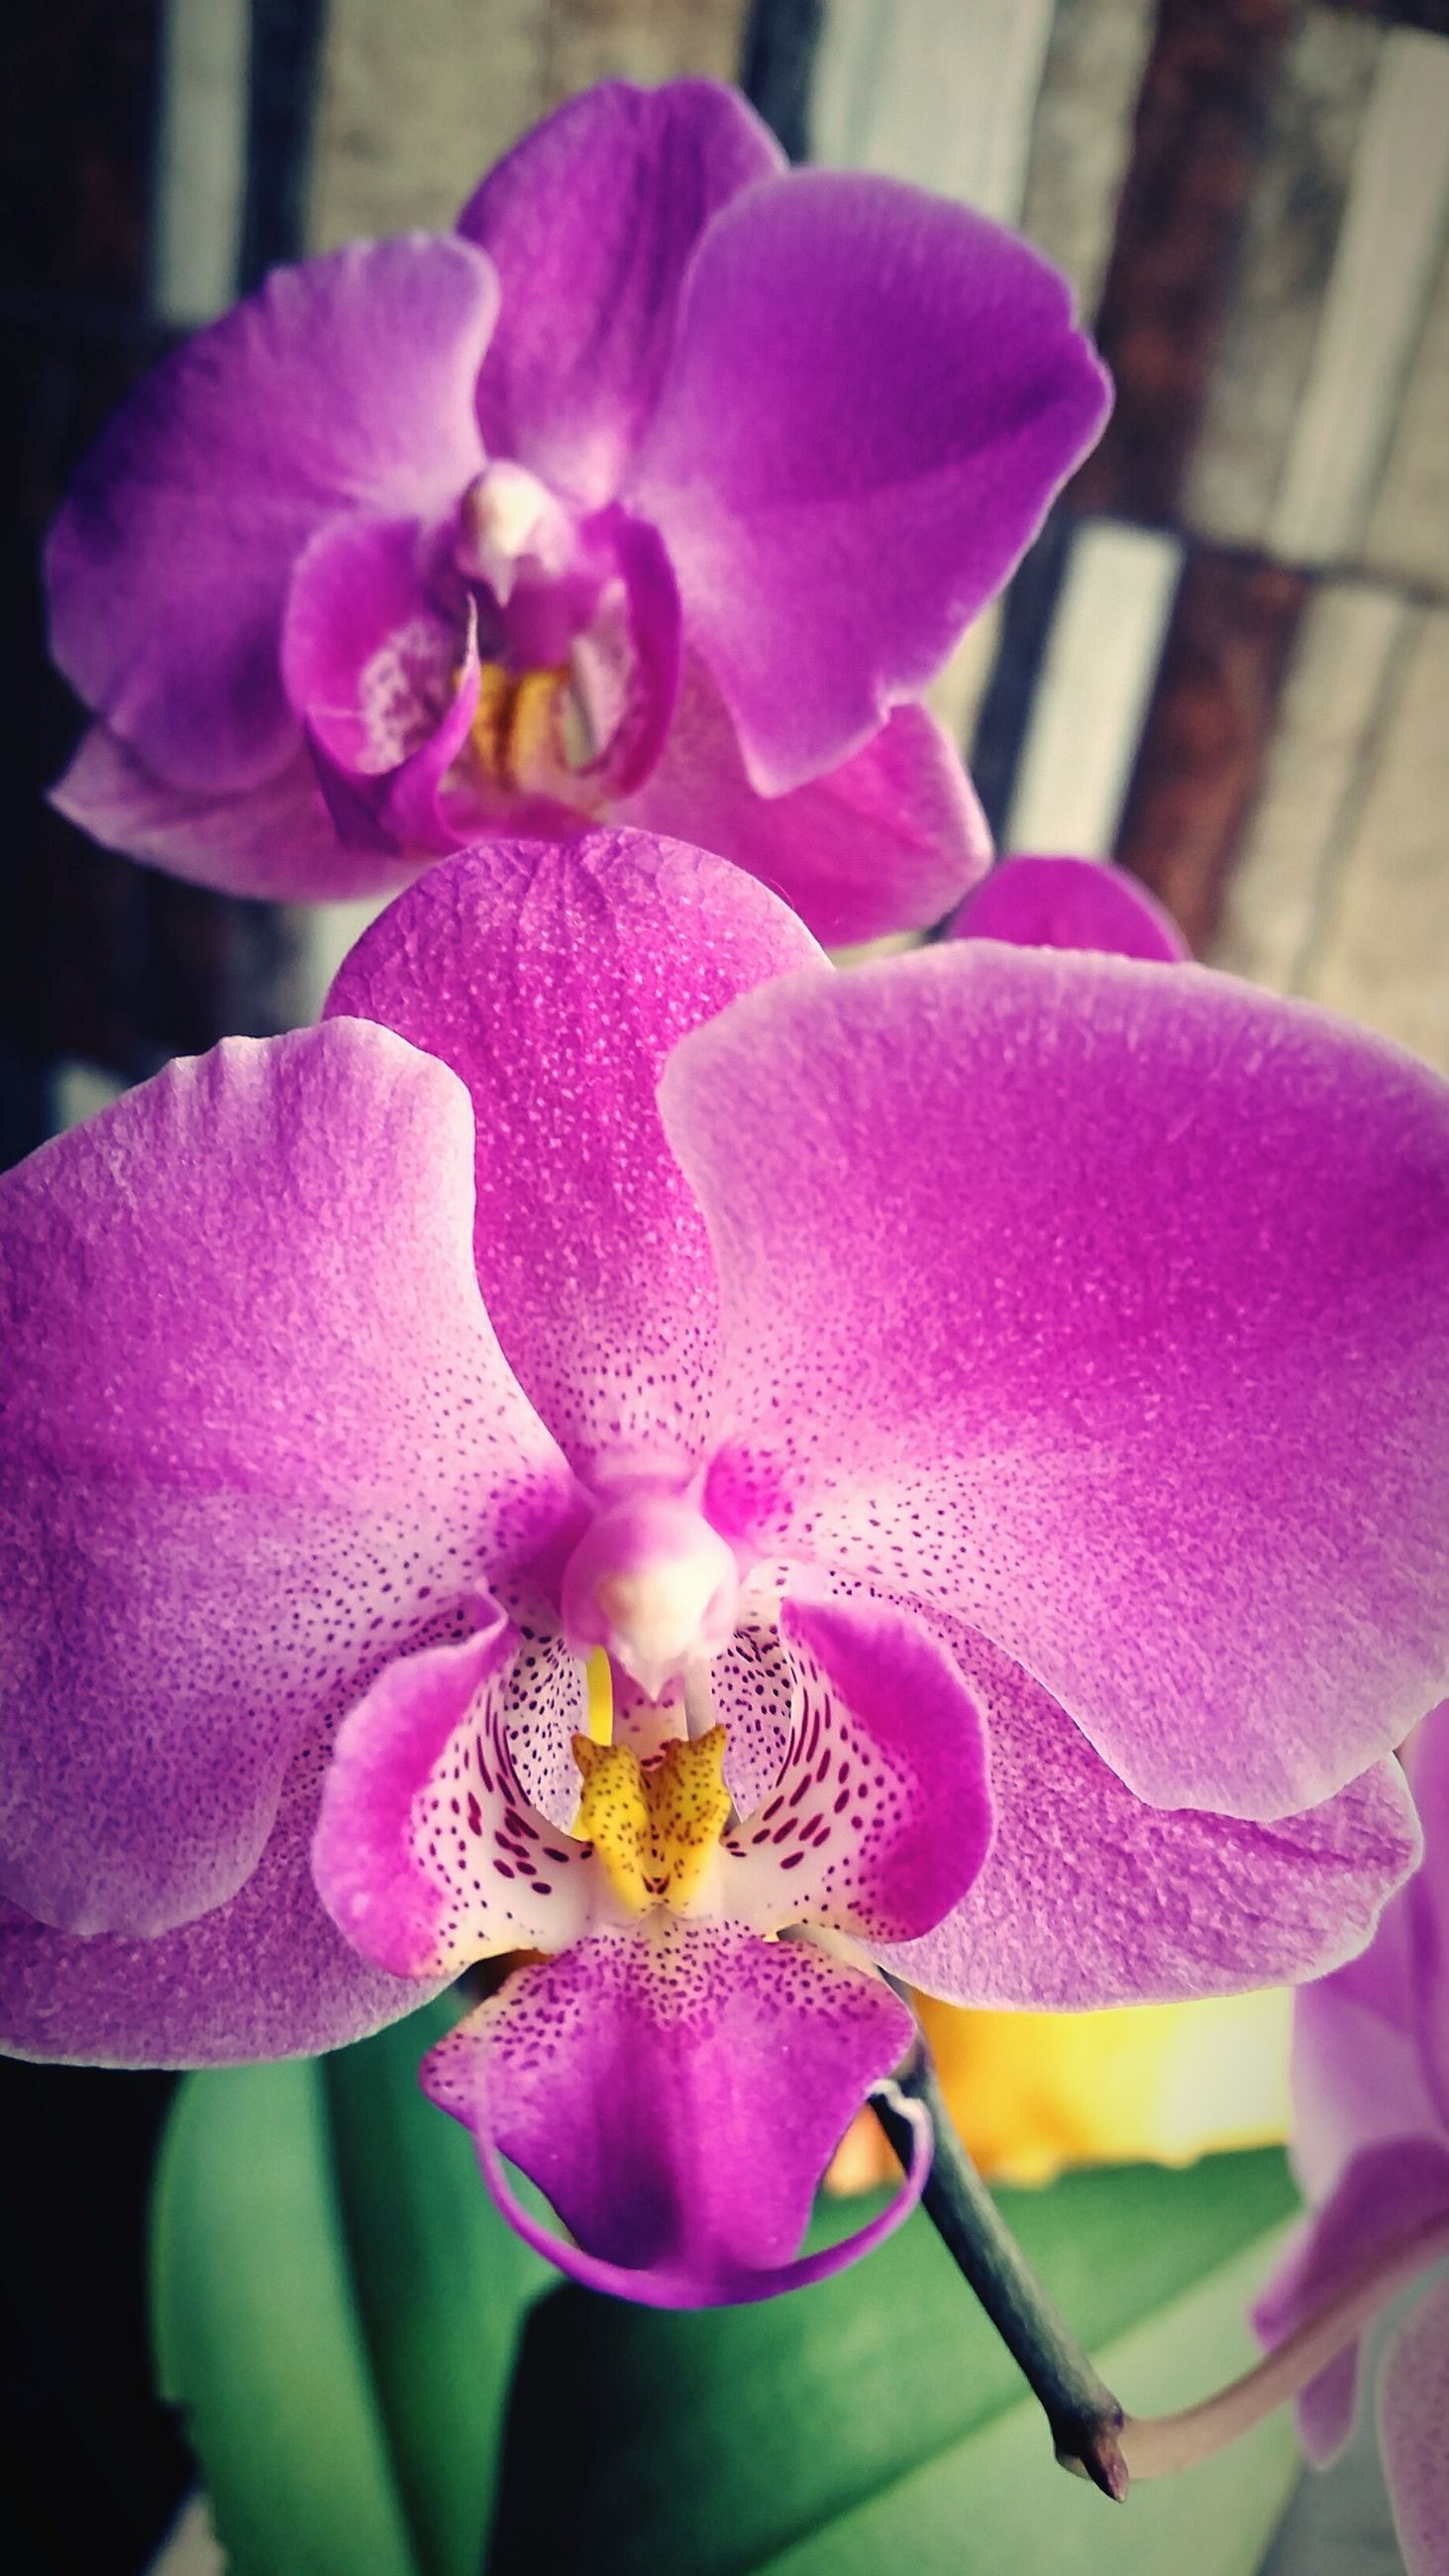 flower, petal, freshness, flower head, fragility, close-up, beauty in nature, growth, purple, focus on foreground, nature, blooming, pink color, orchid, stamen, plant, in bloom, pollen, blossom, single flower